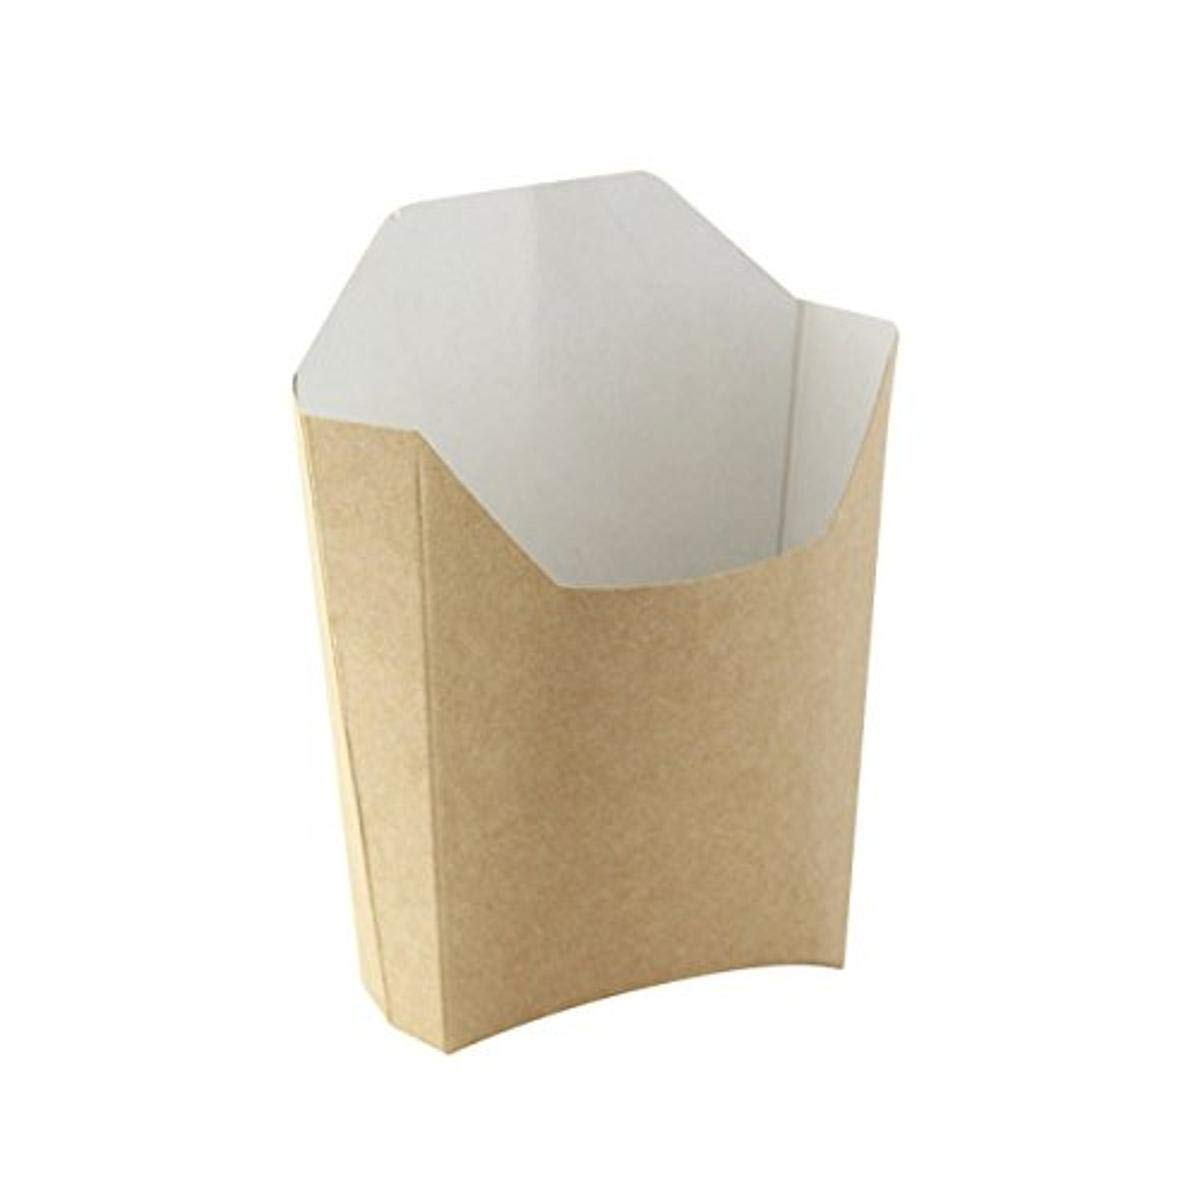 Large Kraft French Fry Pails (Case of 1000), PacknWood - Brown Kraft Paper Food Containers French Fry Holder (5.3